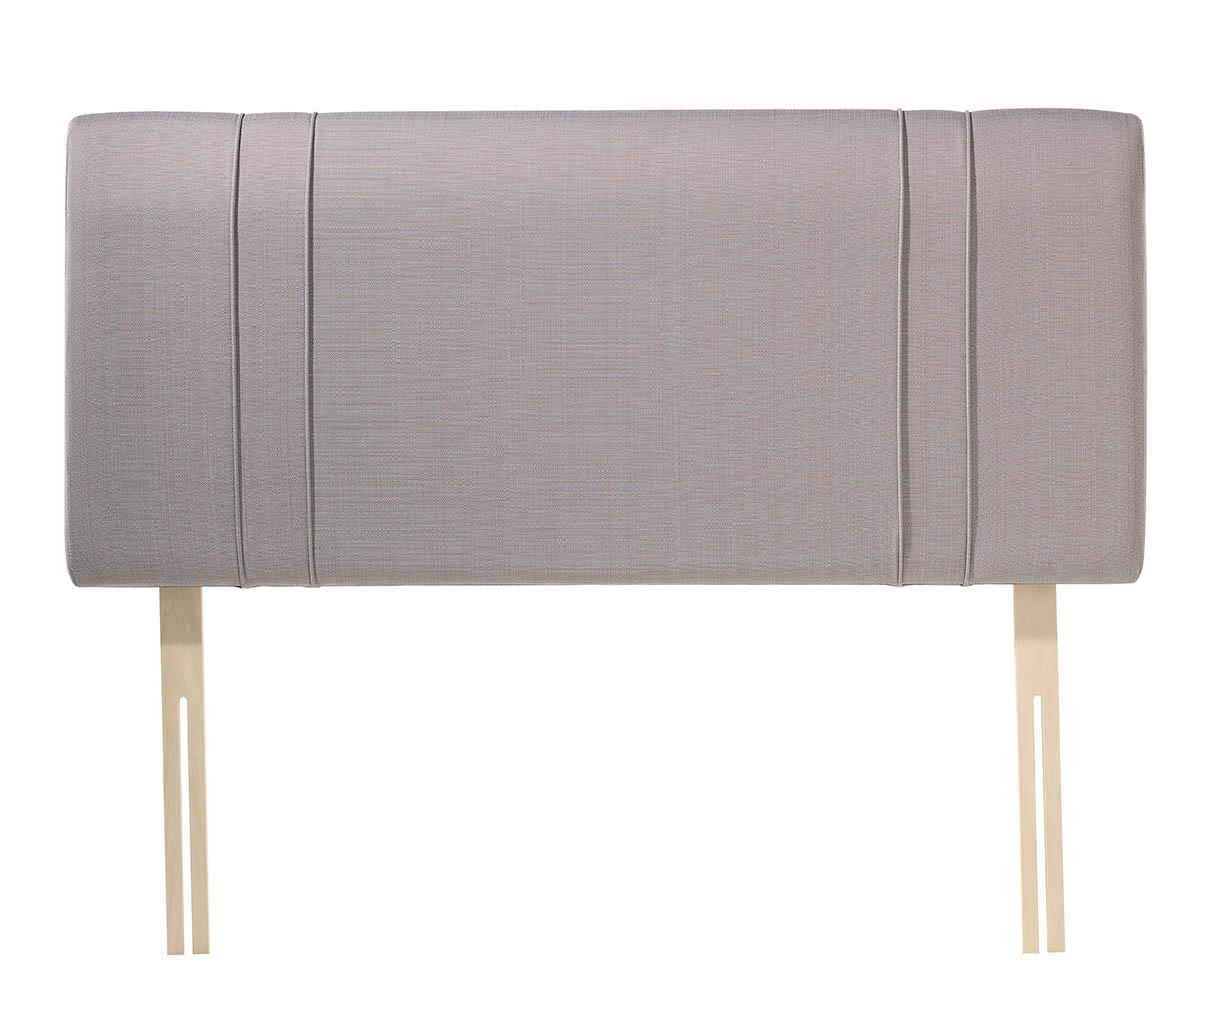 MACKINTOSH - Strut Headboard by Harrison Beds